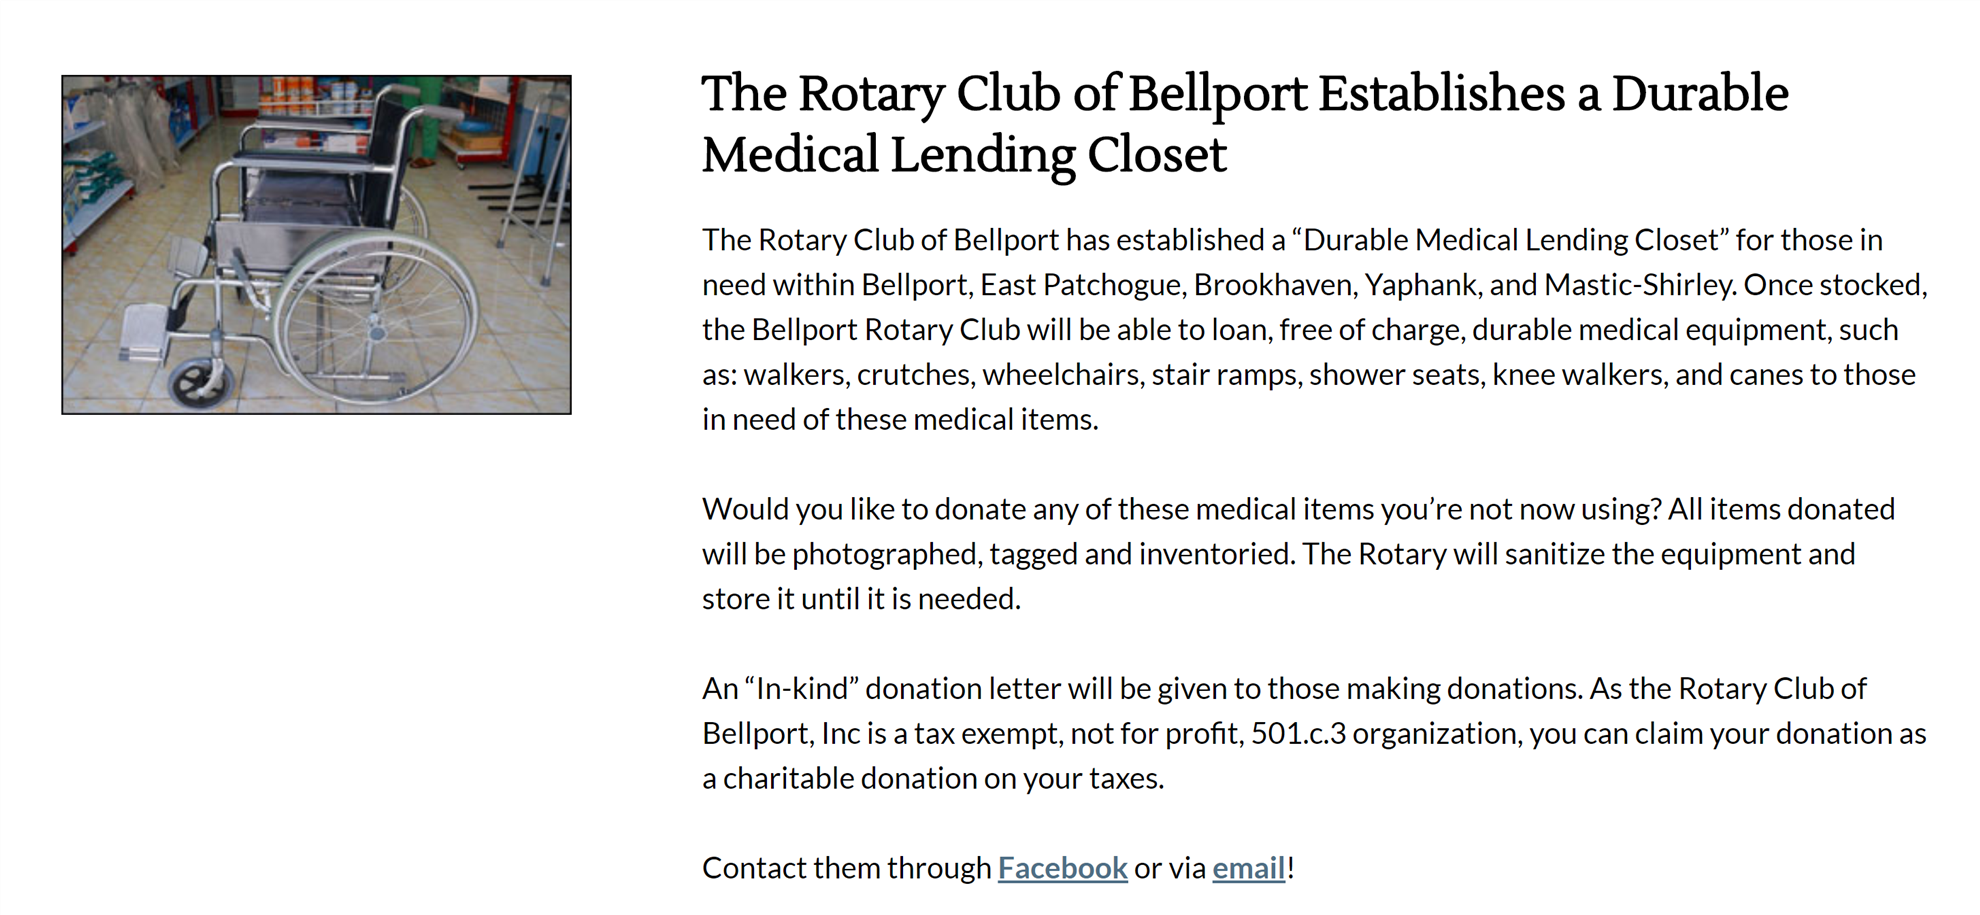 The Rotary Club of Bellport Establishes a Durable Medical Lending Closet